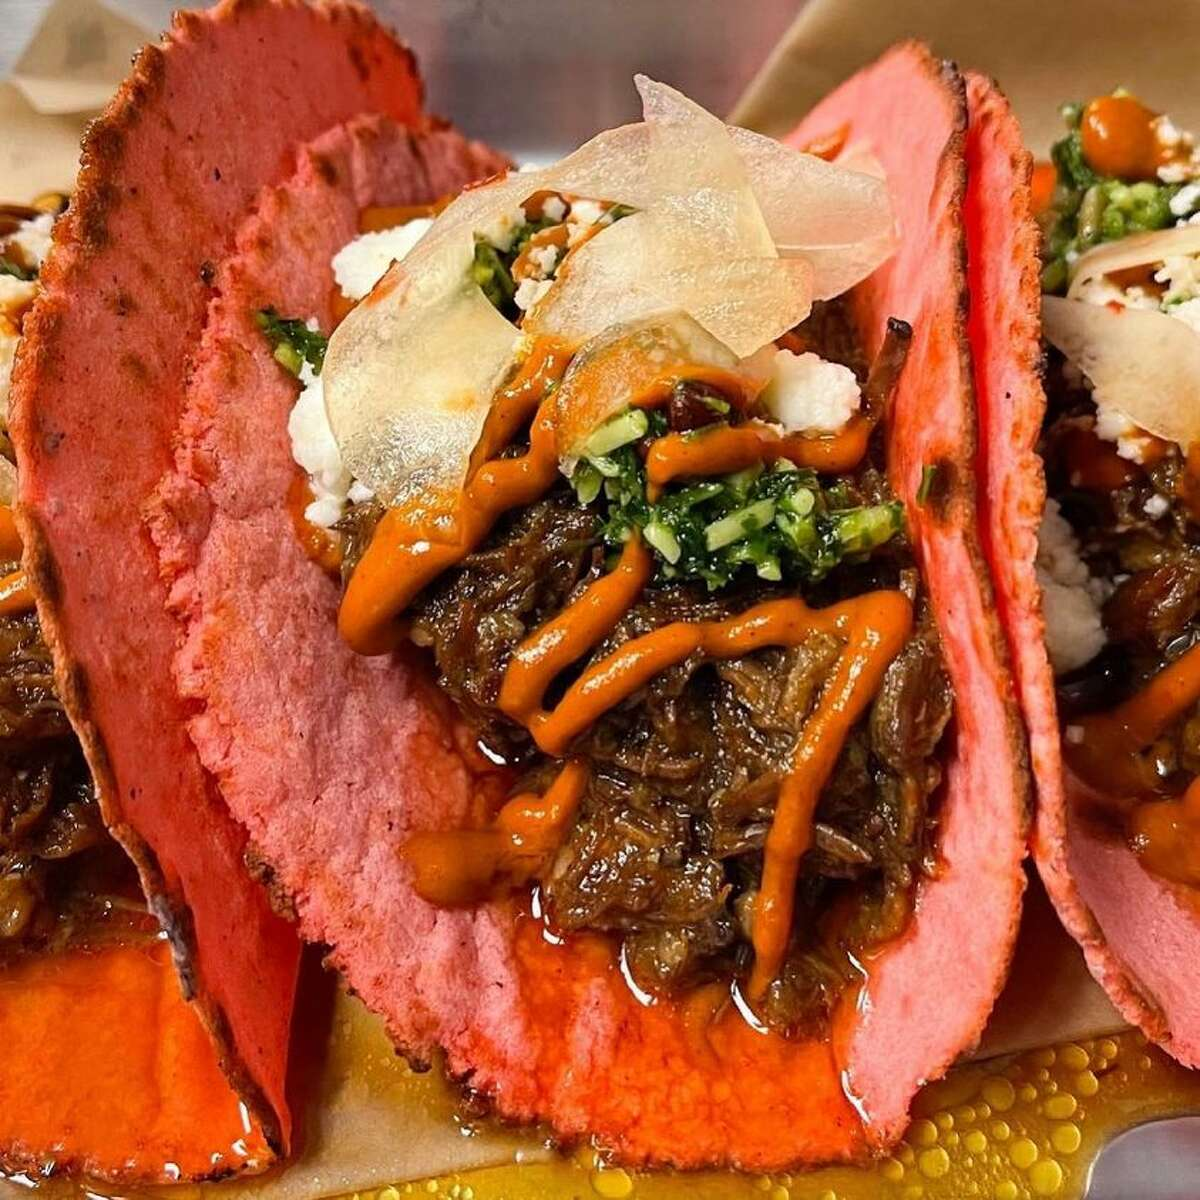 Barbacoa tacos and Big Red are a San Antonio staple, but rolling out masa infused with the soda and topping the meat with a strawberry jam, flavorful pesto, salsa and pickled watermelon rind might be something local foodies have never tried before.